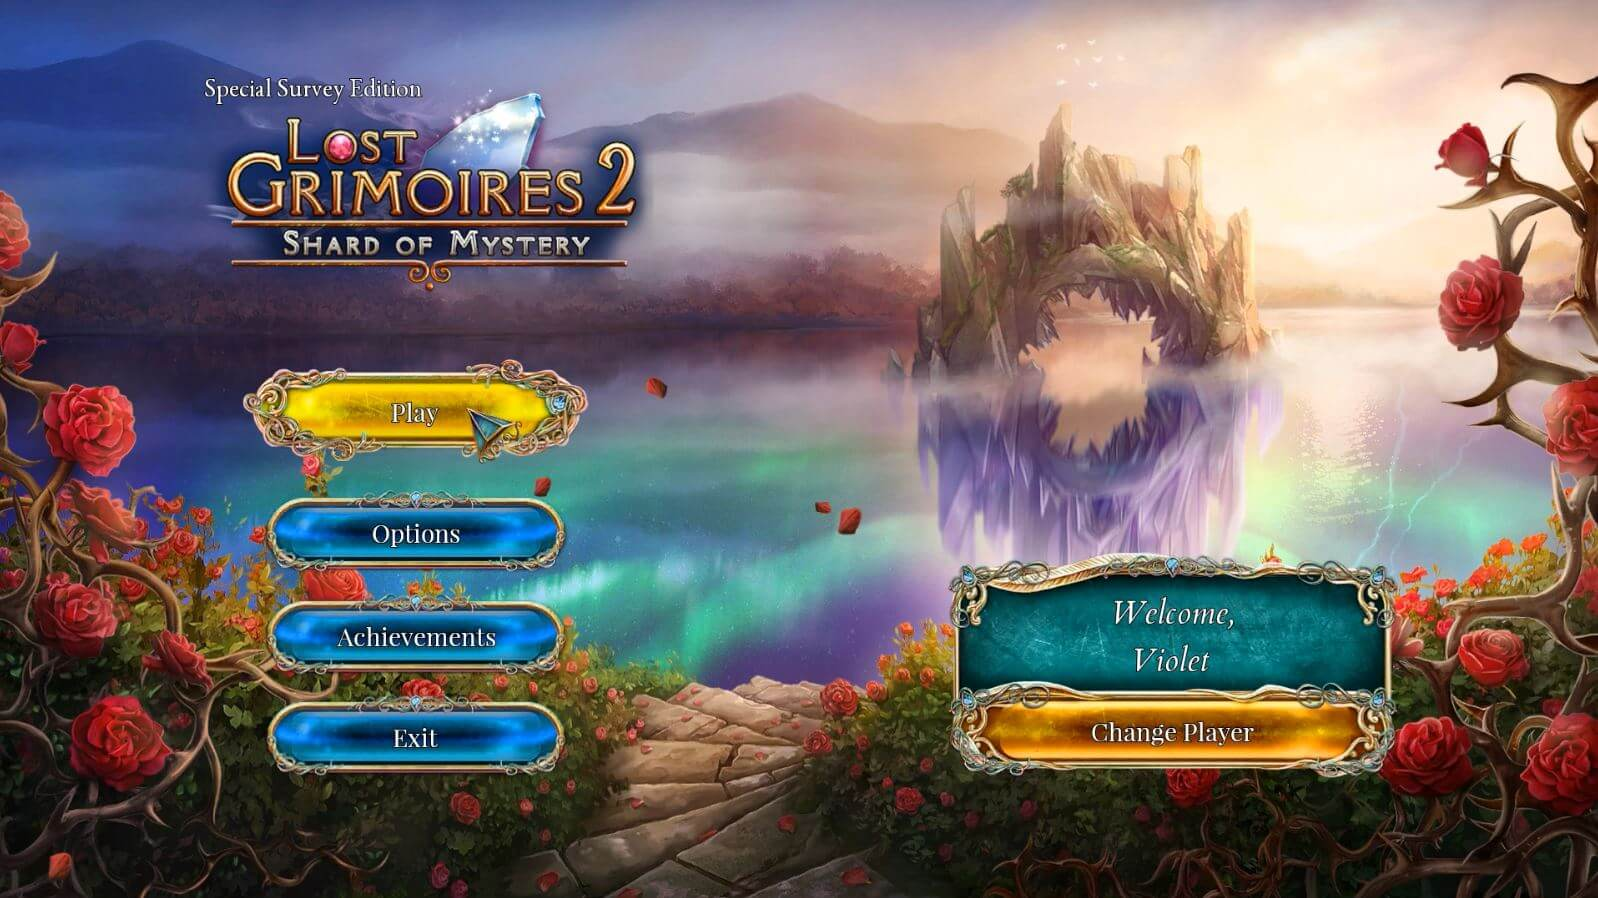 lost-grimoires-2-shard-of-mystery-menu